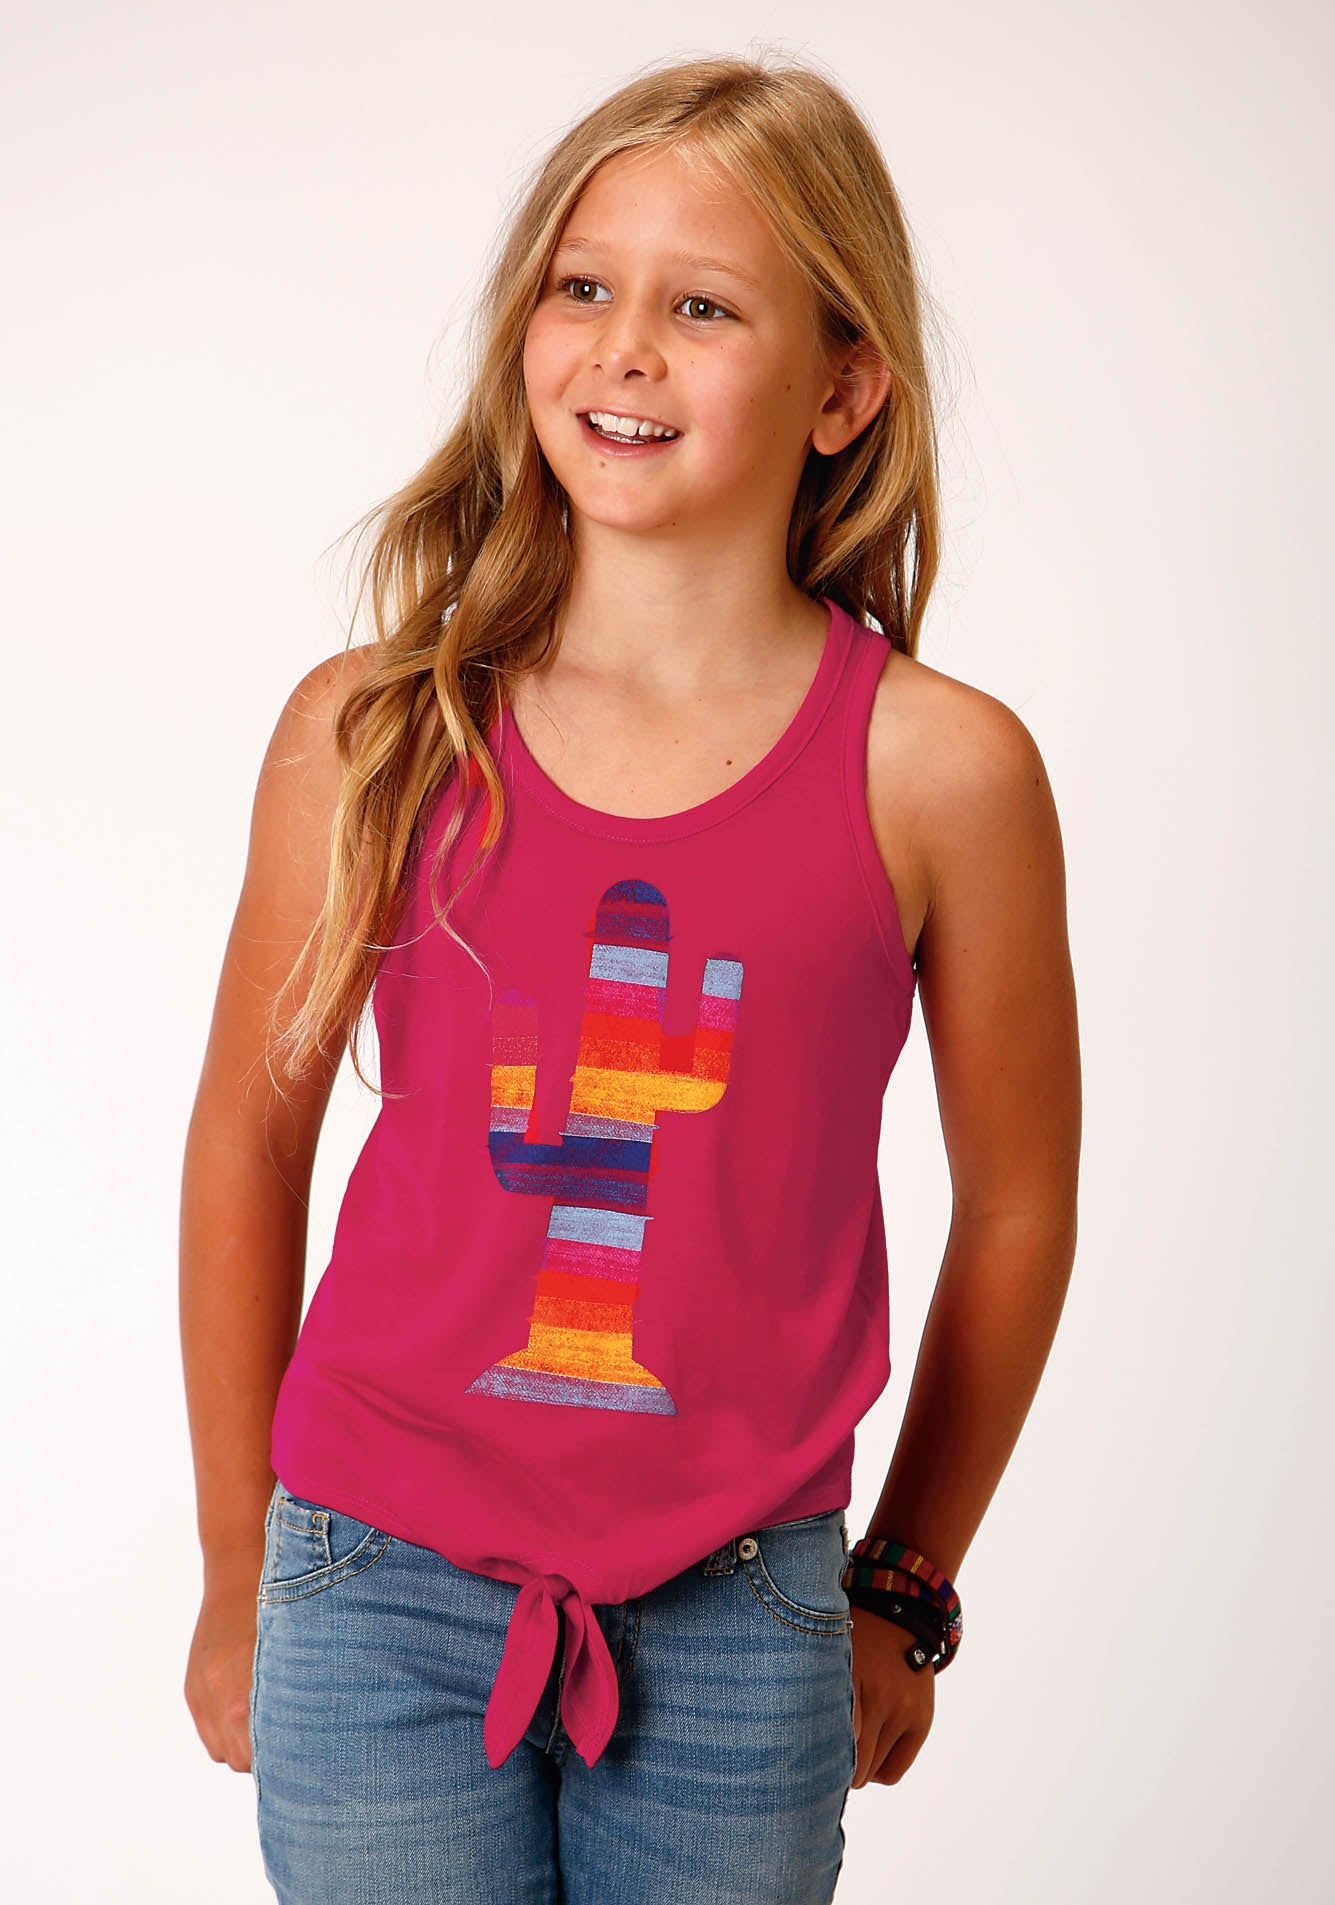 ROPER GIRLS PINK 00244 POLY RAYON RACERBACL TANK W/TIE FIVE STAR GIRL'S SLEEVELESS